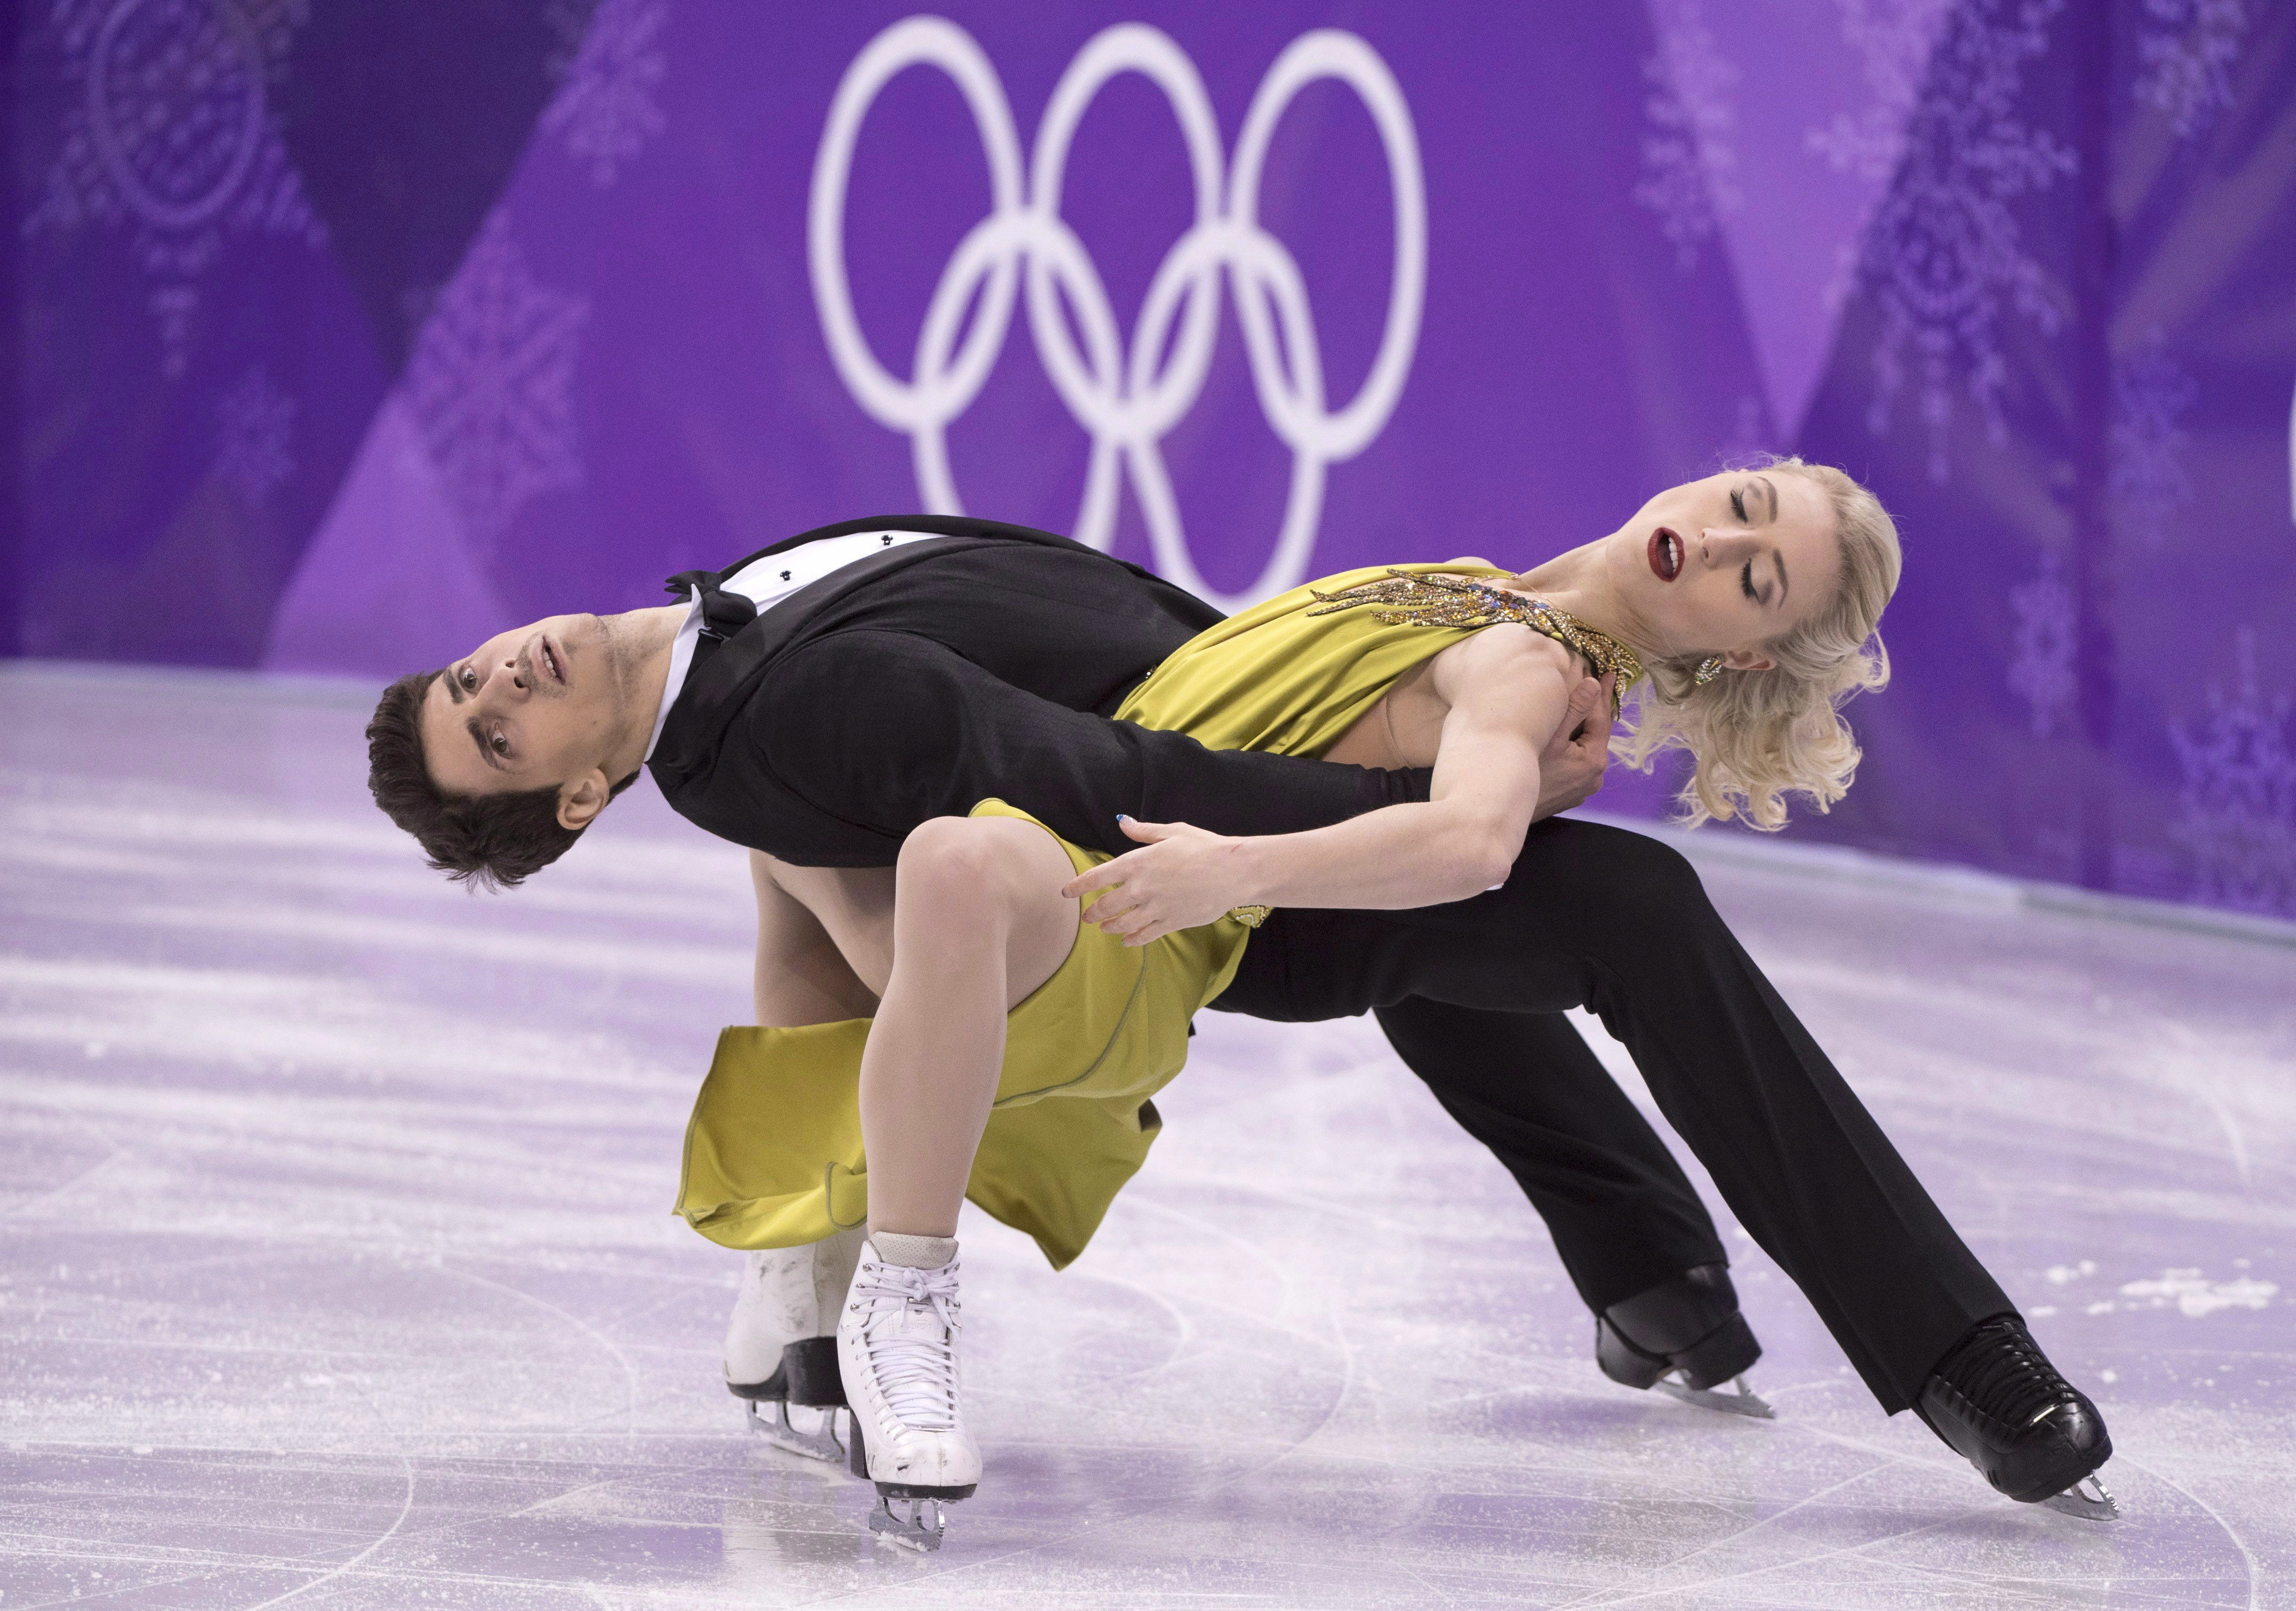 Two figure skaters in a low to the ice move